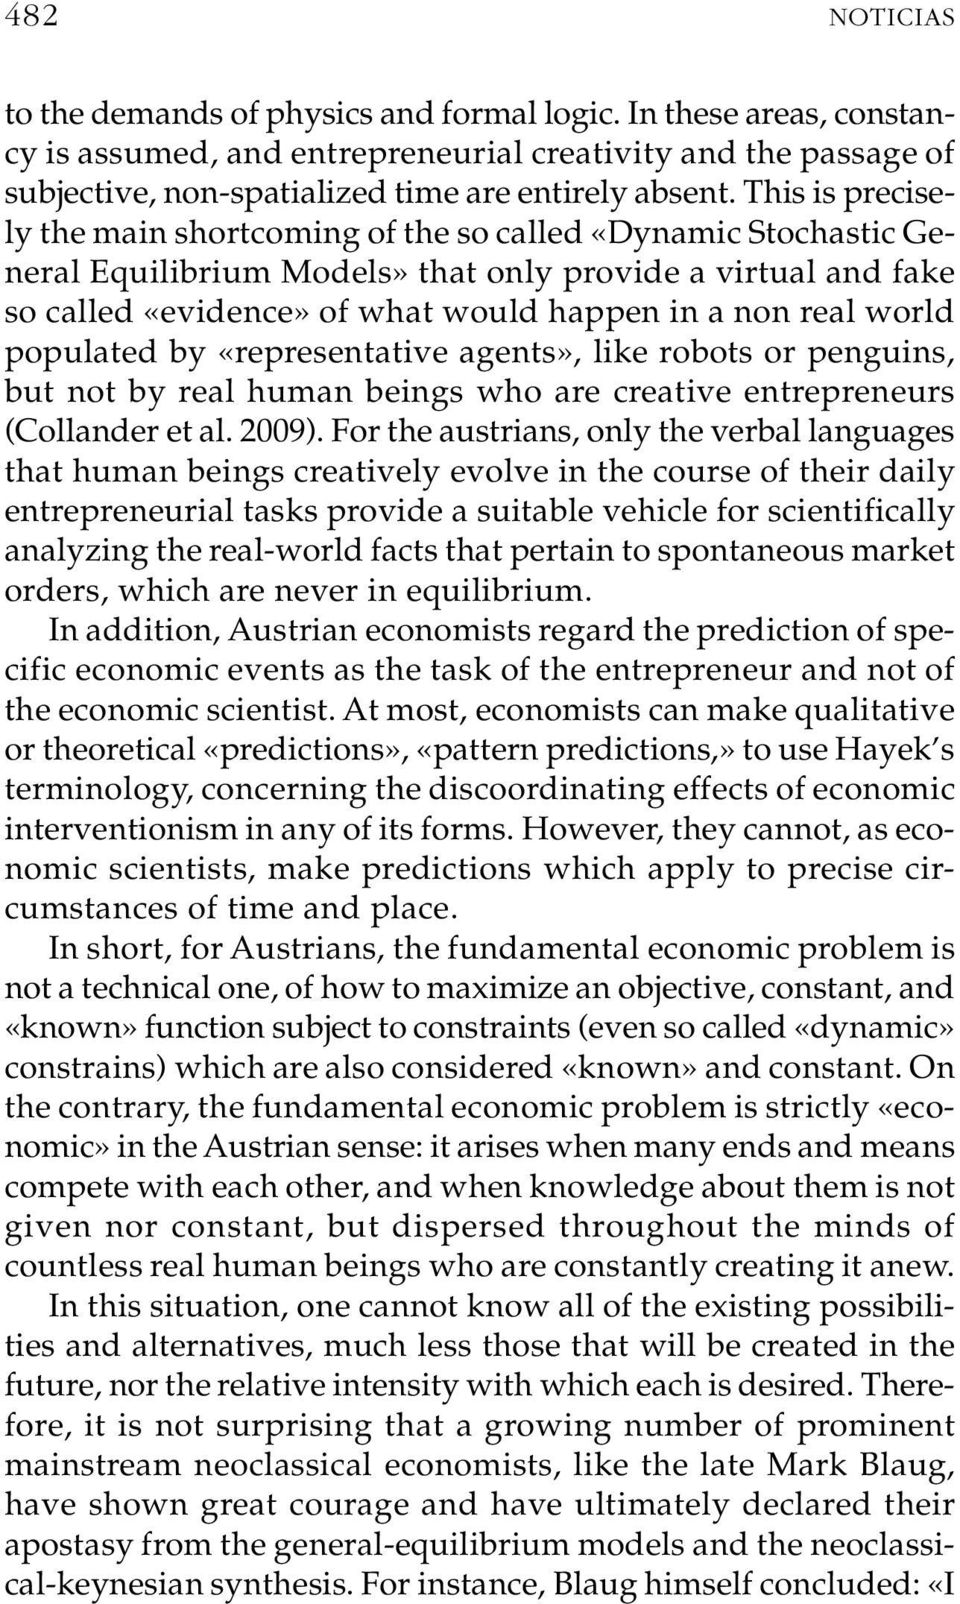 world populated by «representative agents», like robots or penguins, but not by real human beings who are creative entrepreneurs (Collander et al. 2009).